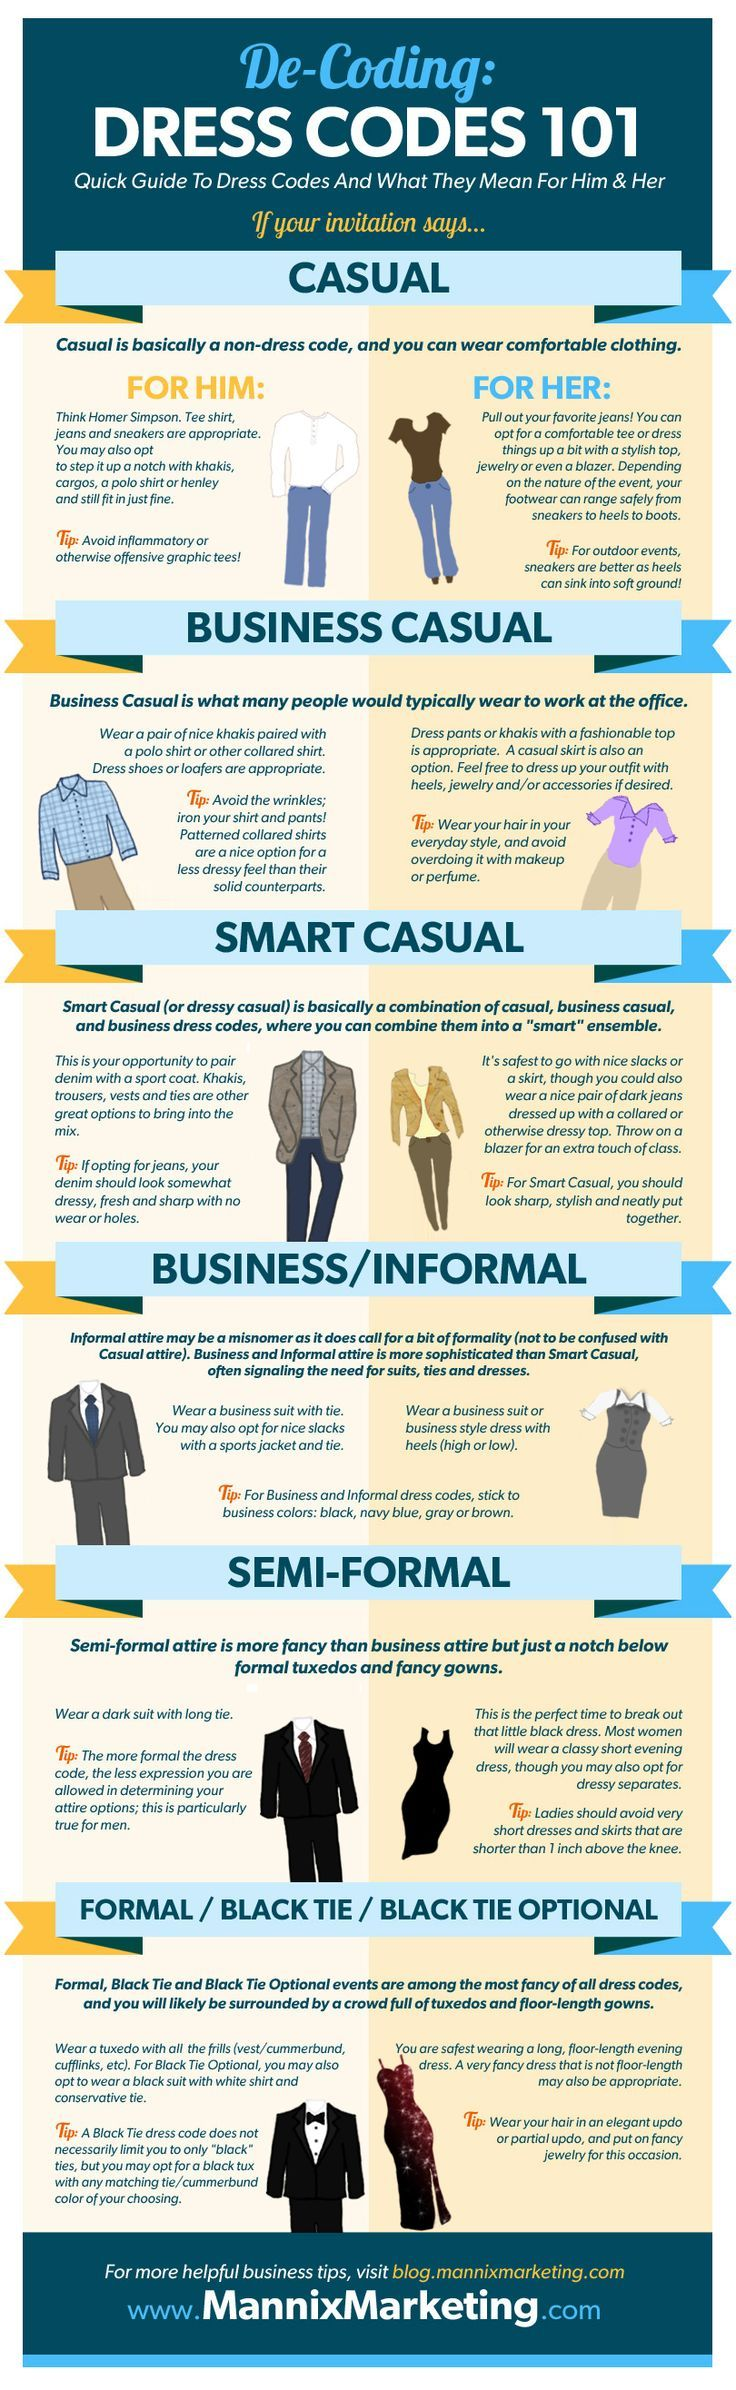 Unlocking the Hidden Meaning of the Different Dress Codes |via`tko MakeUseOf women in business, women business owners